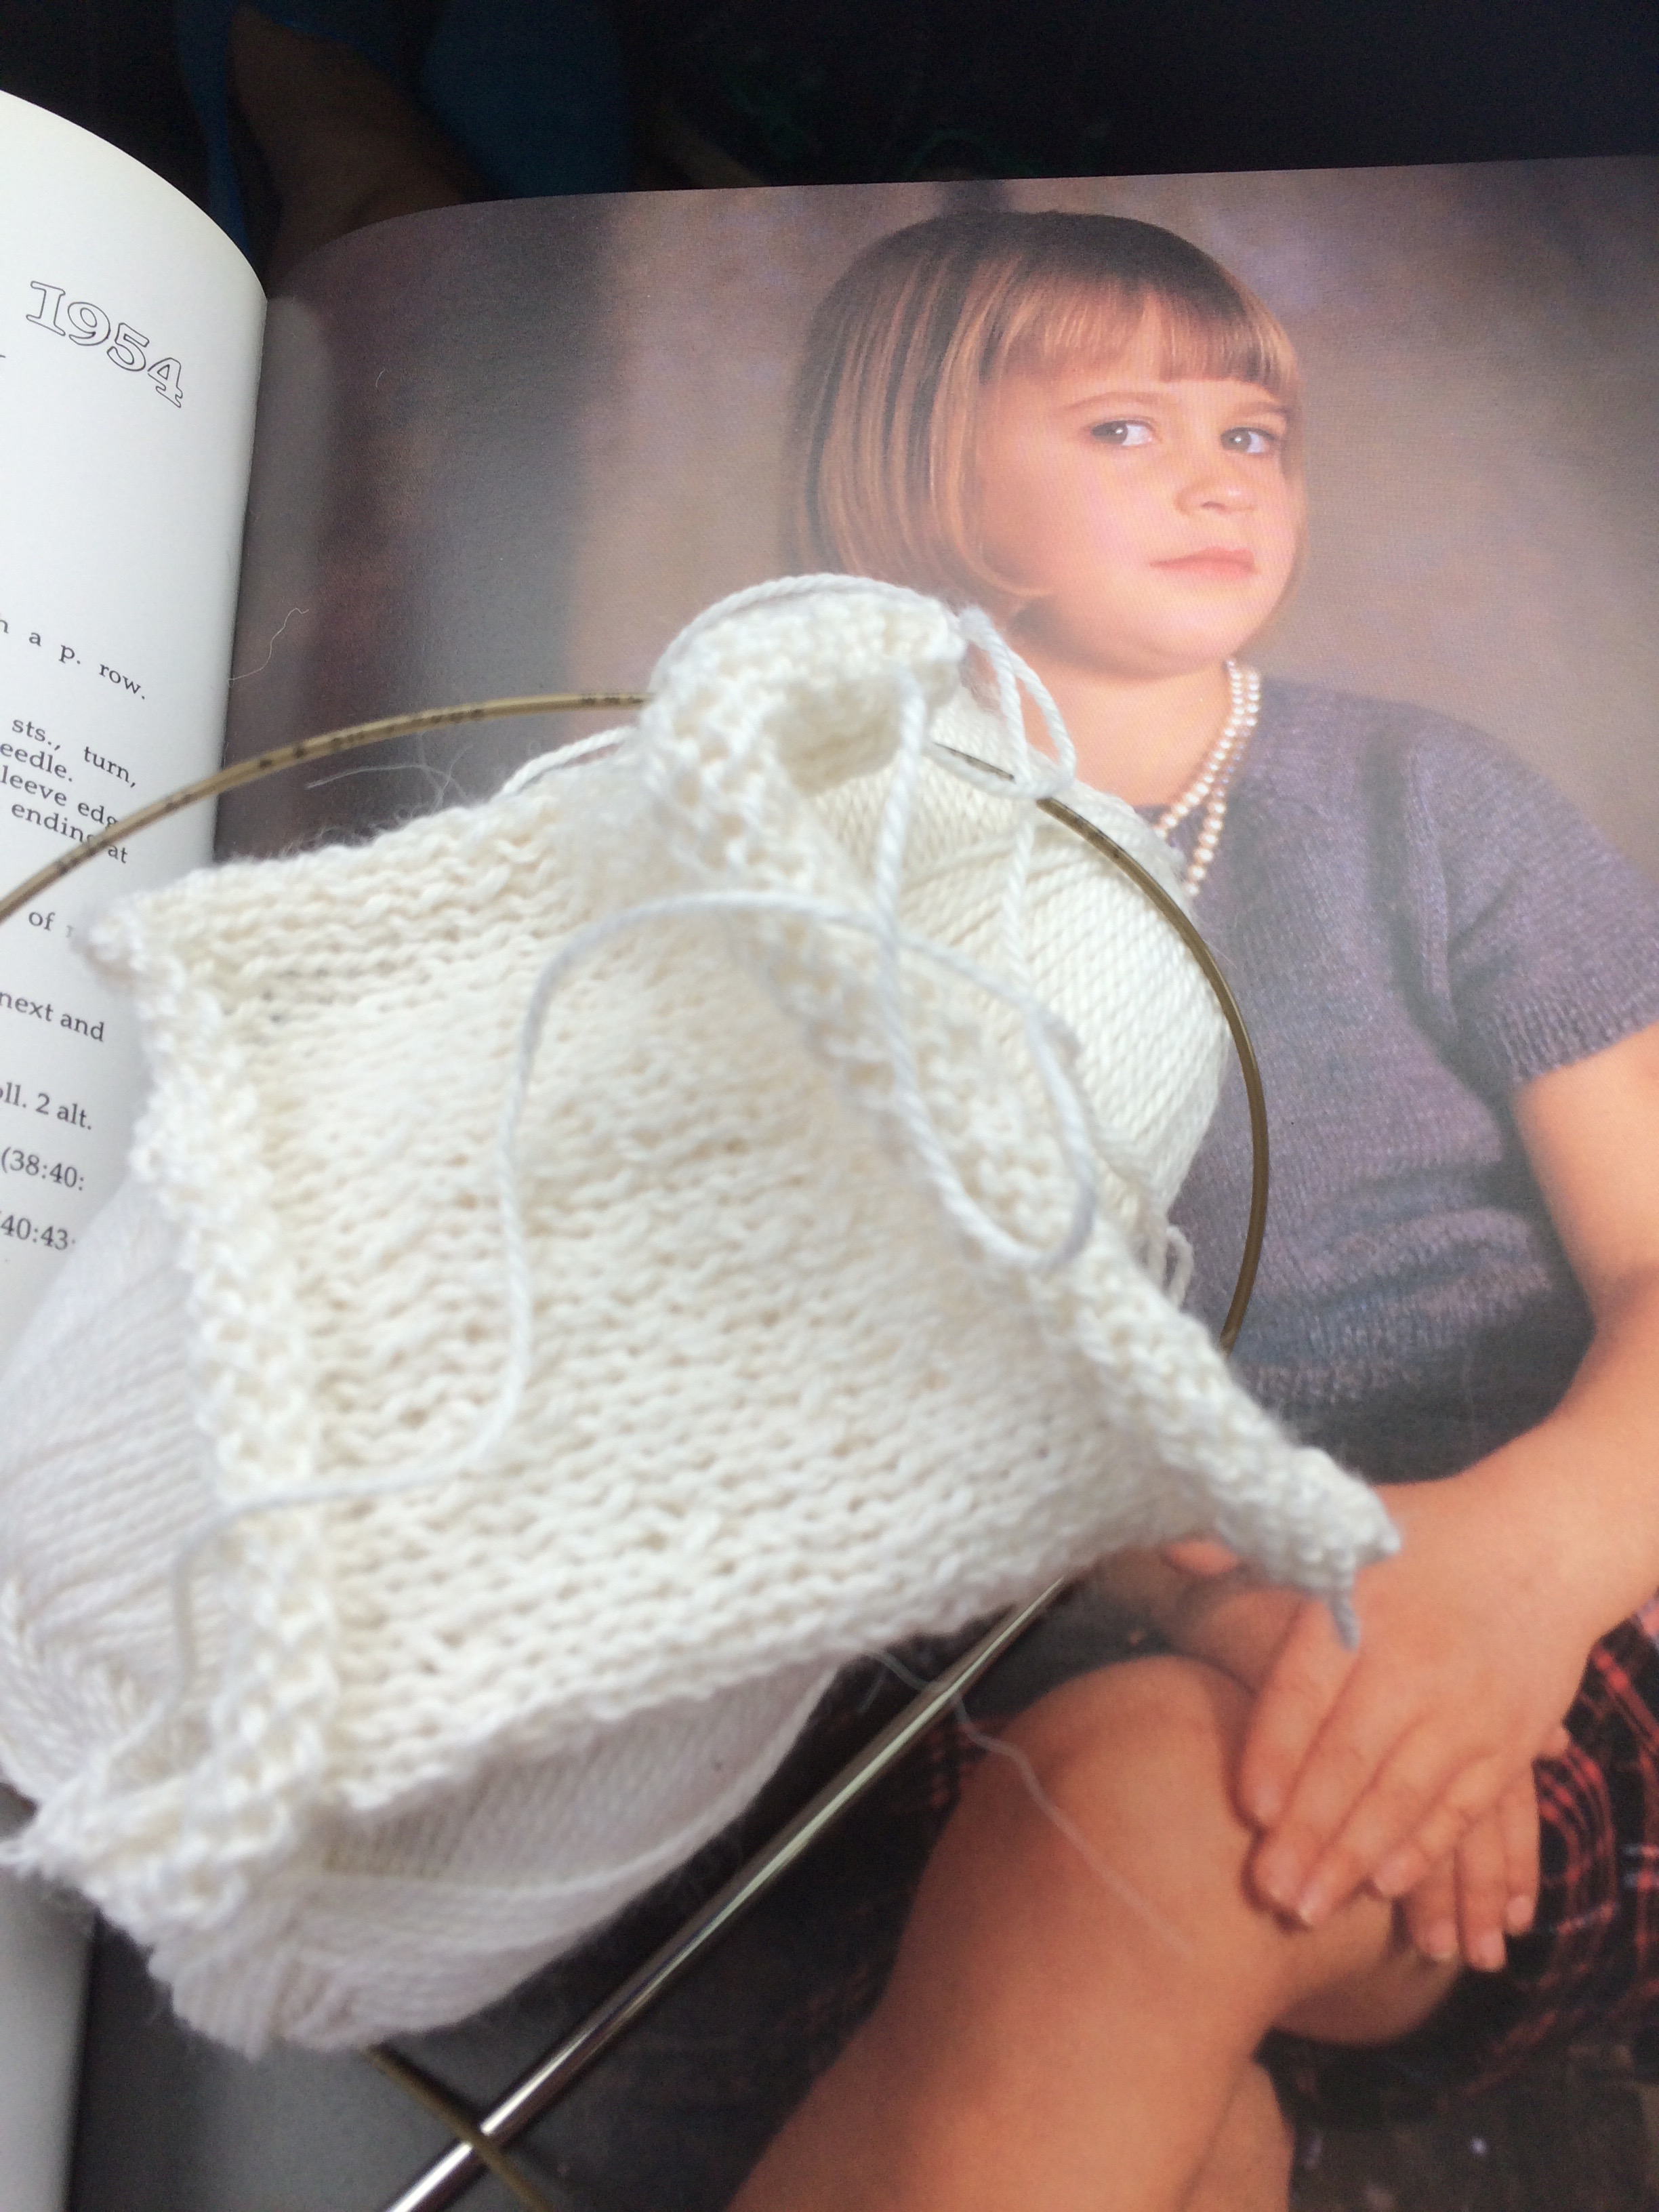 Knitting a tension square